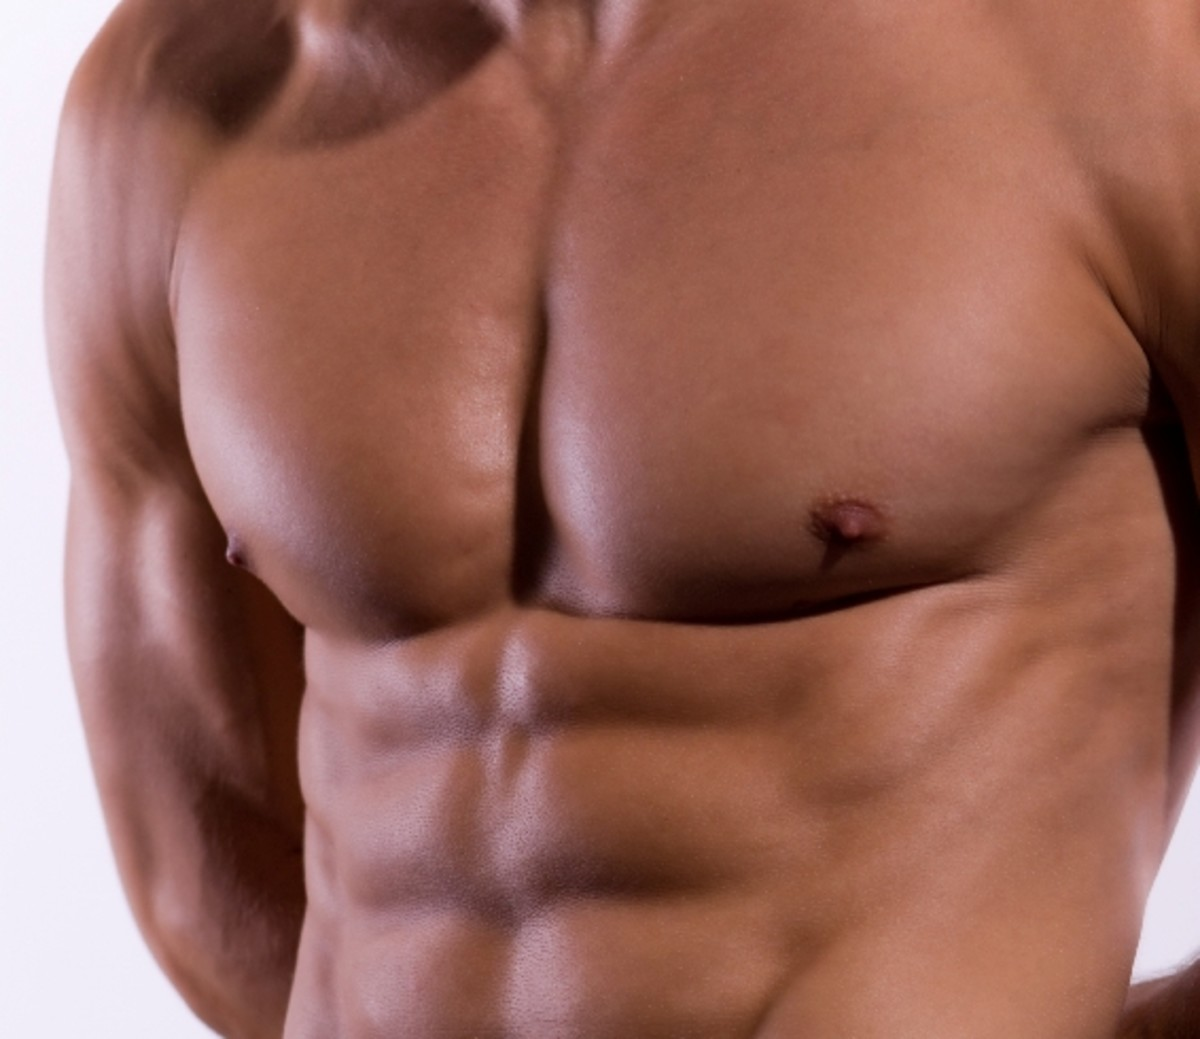 A toned muscular chest